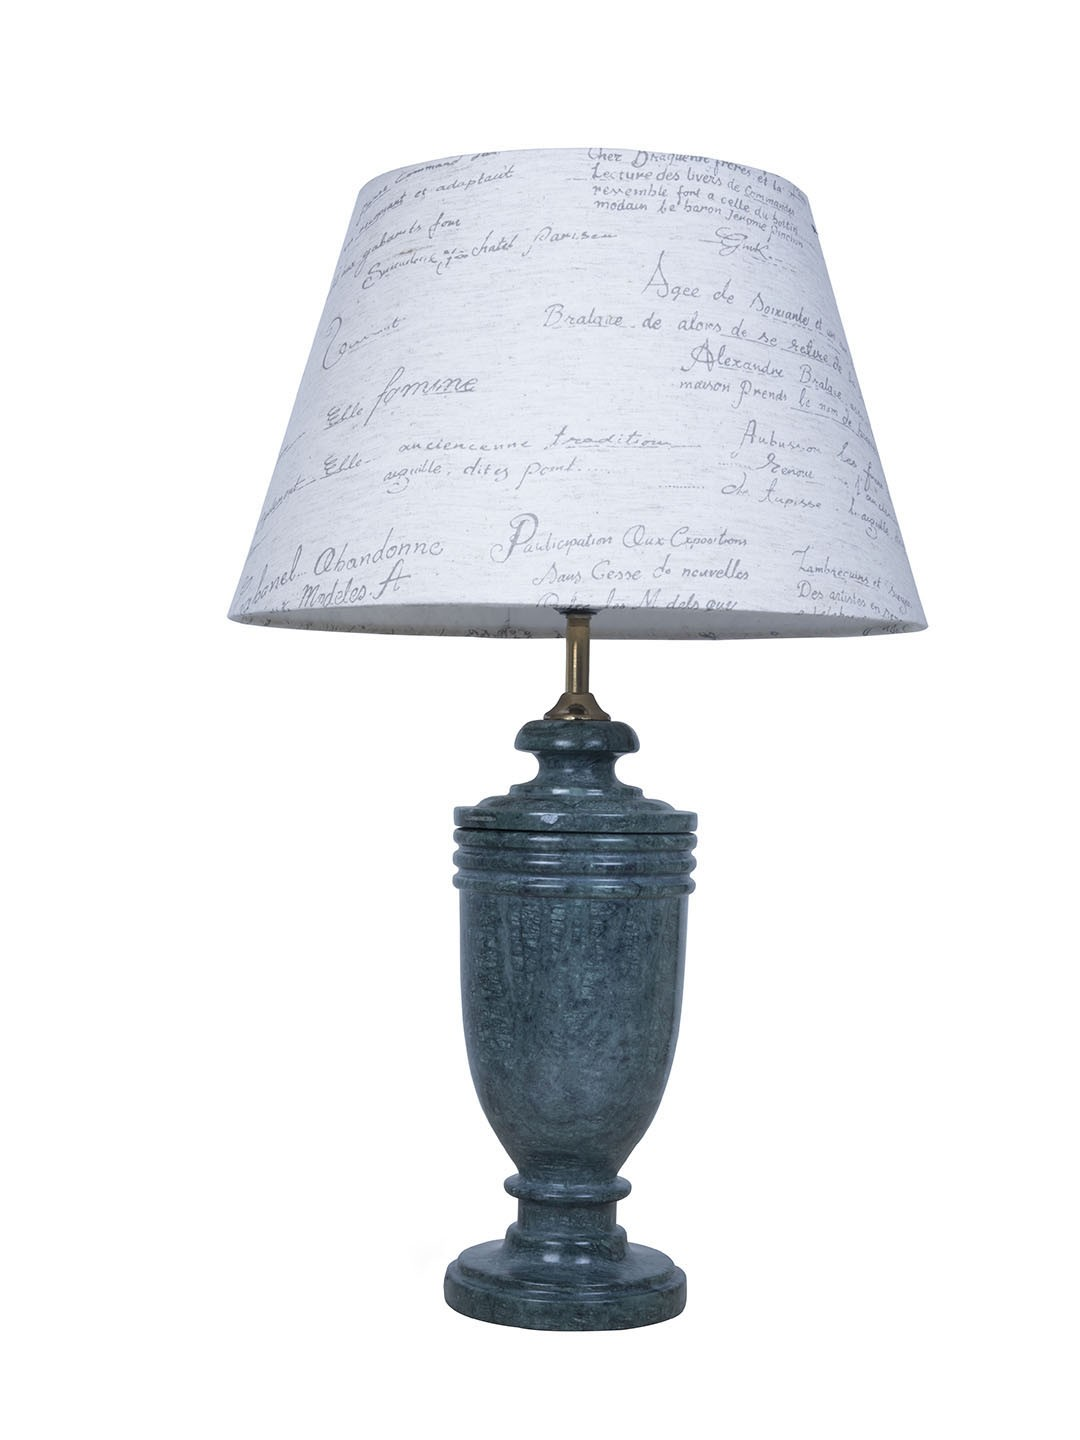 Green Marble Trophy Table Lamp with Calligraphy Shade